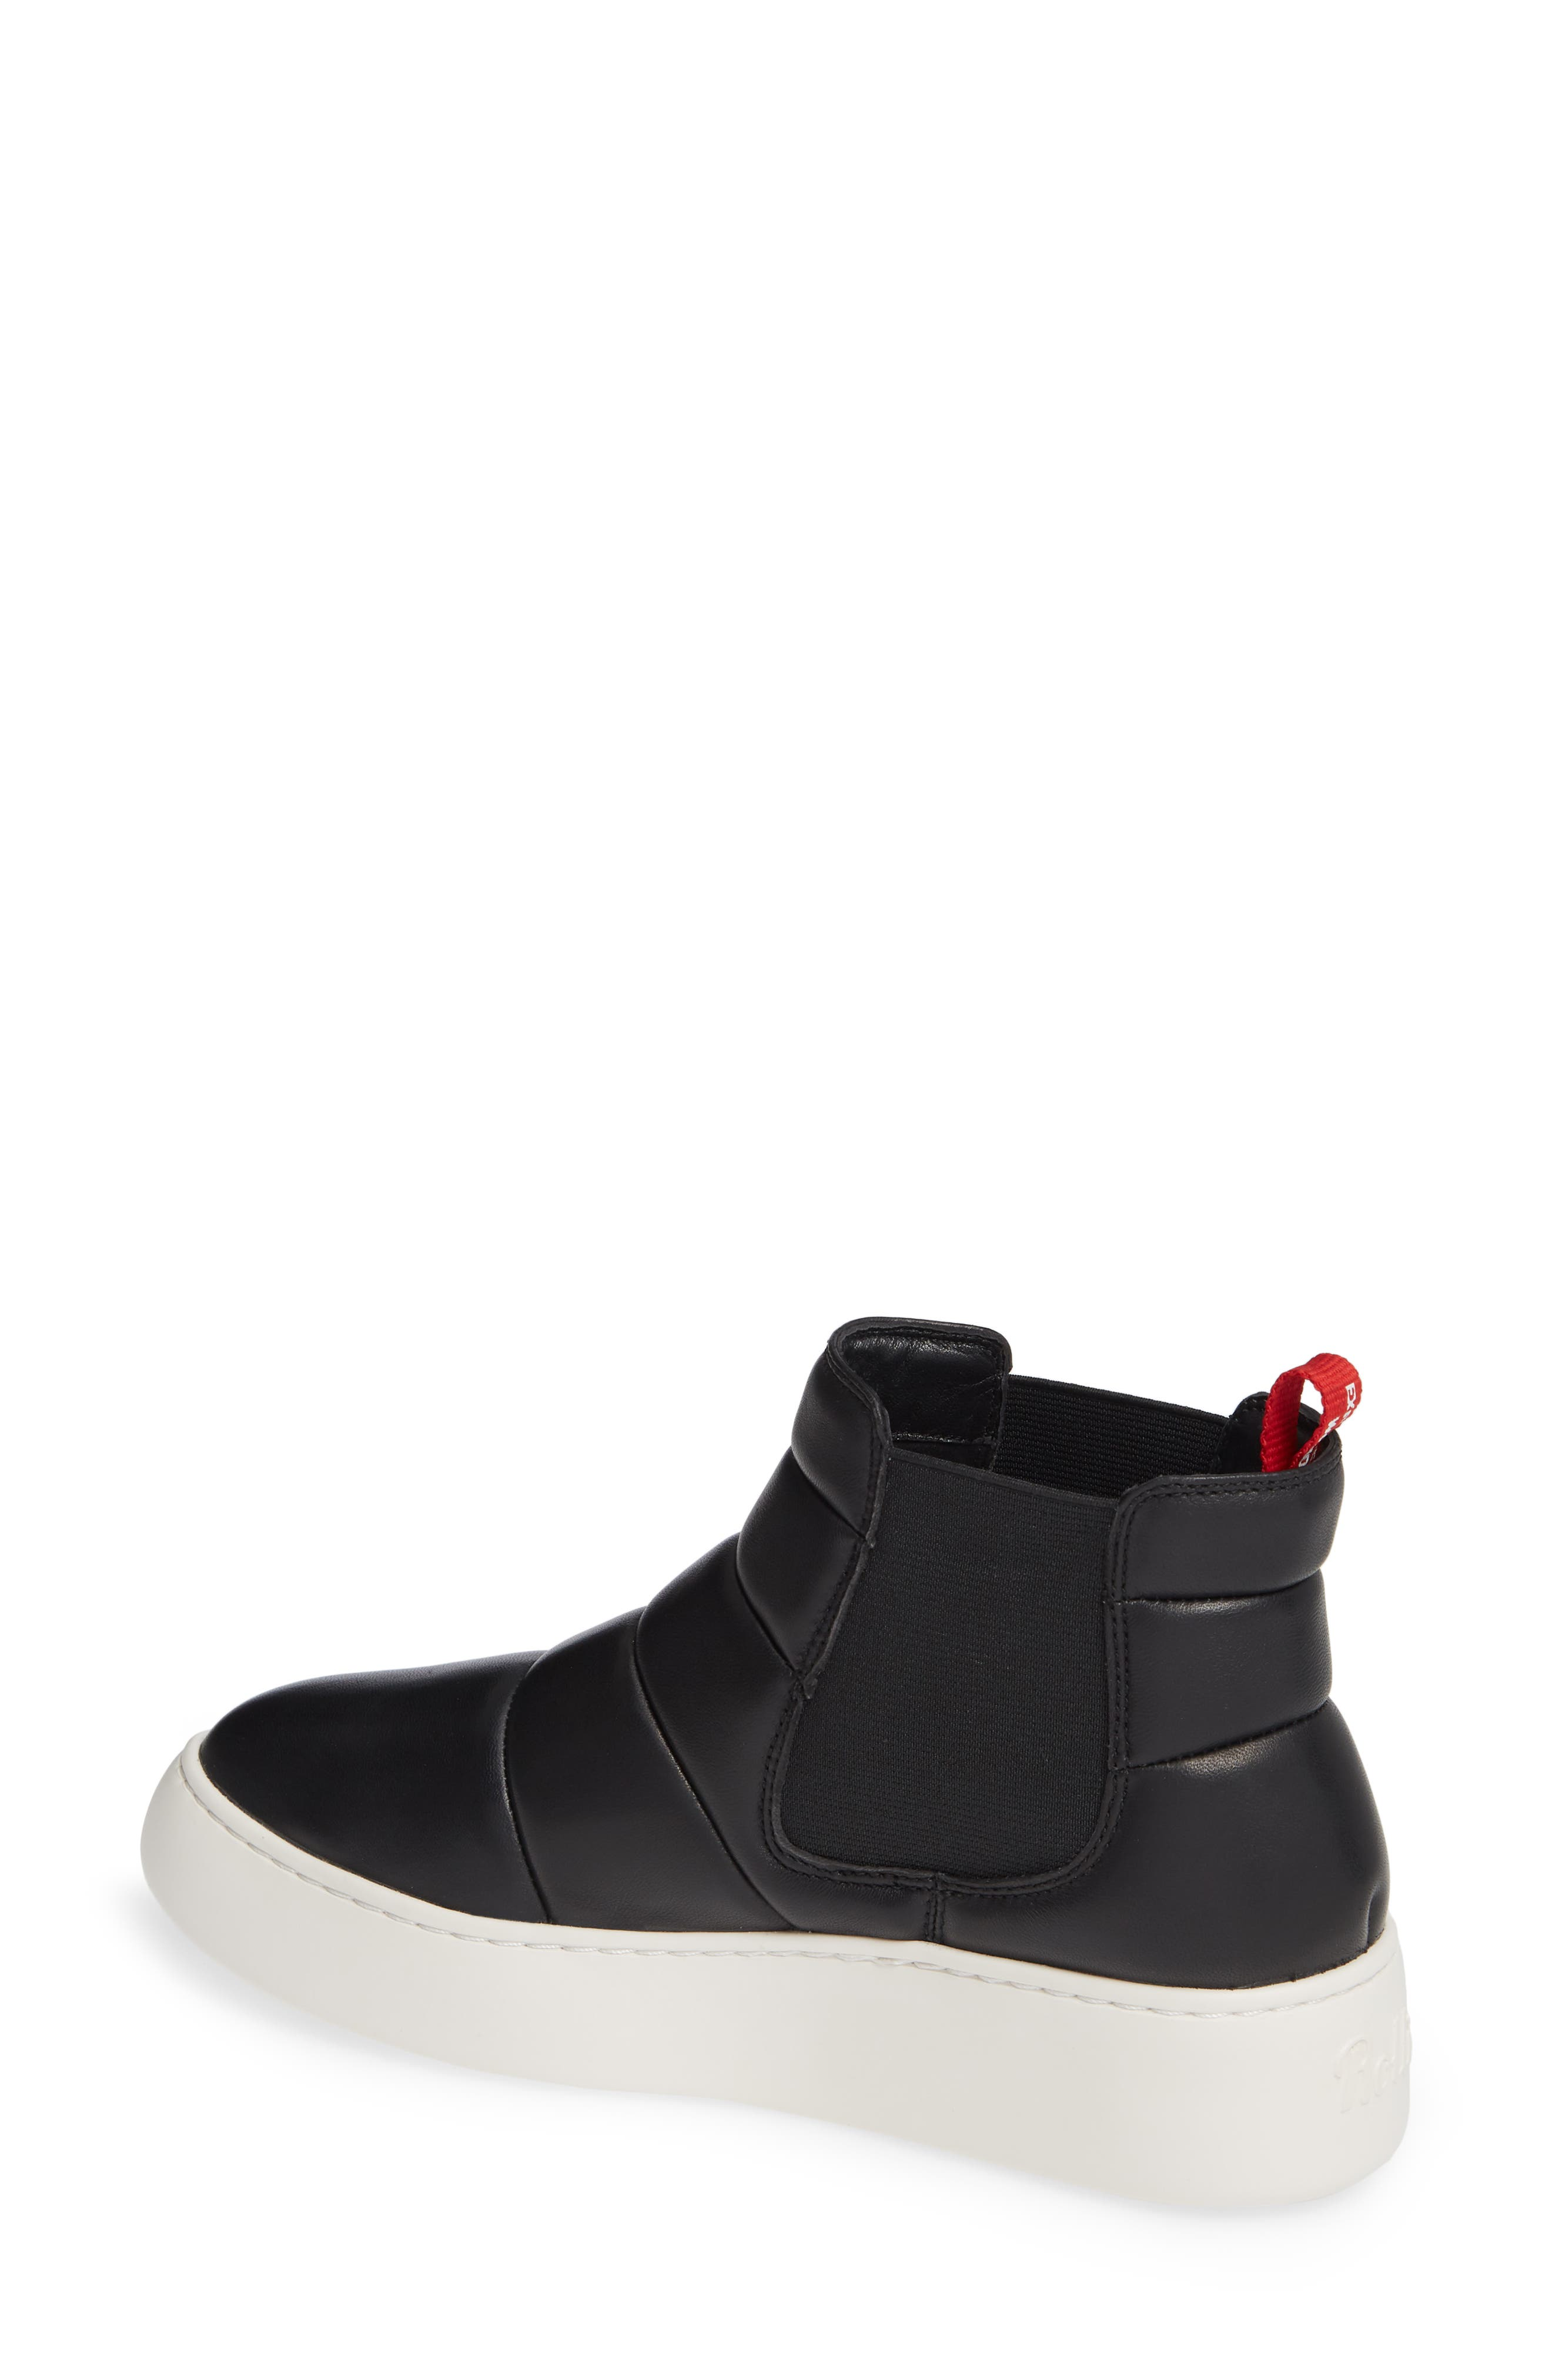 Snow City Quilted Chelsea Sneaker Boot,                             Alternate thumbnail 2, color,                             BLACK NAPPA